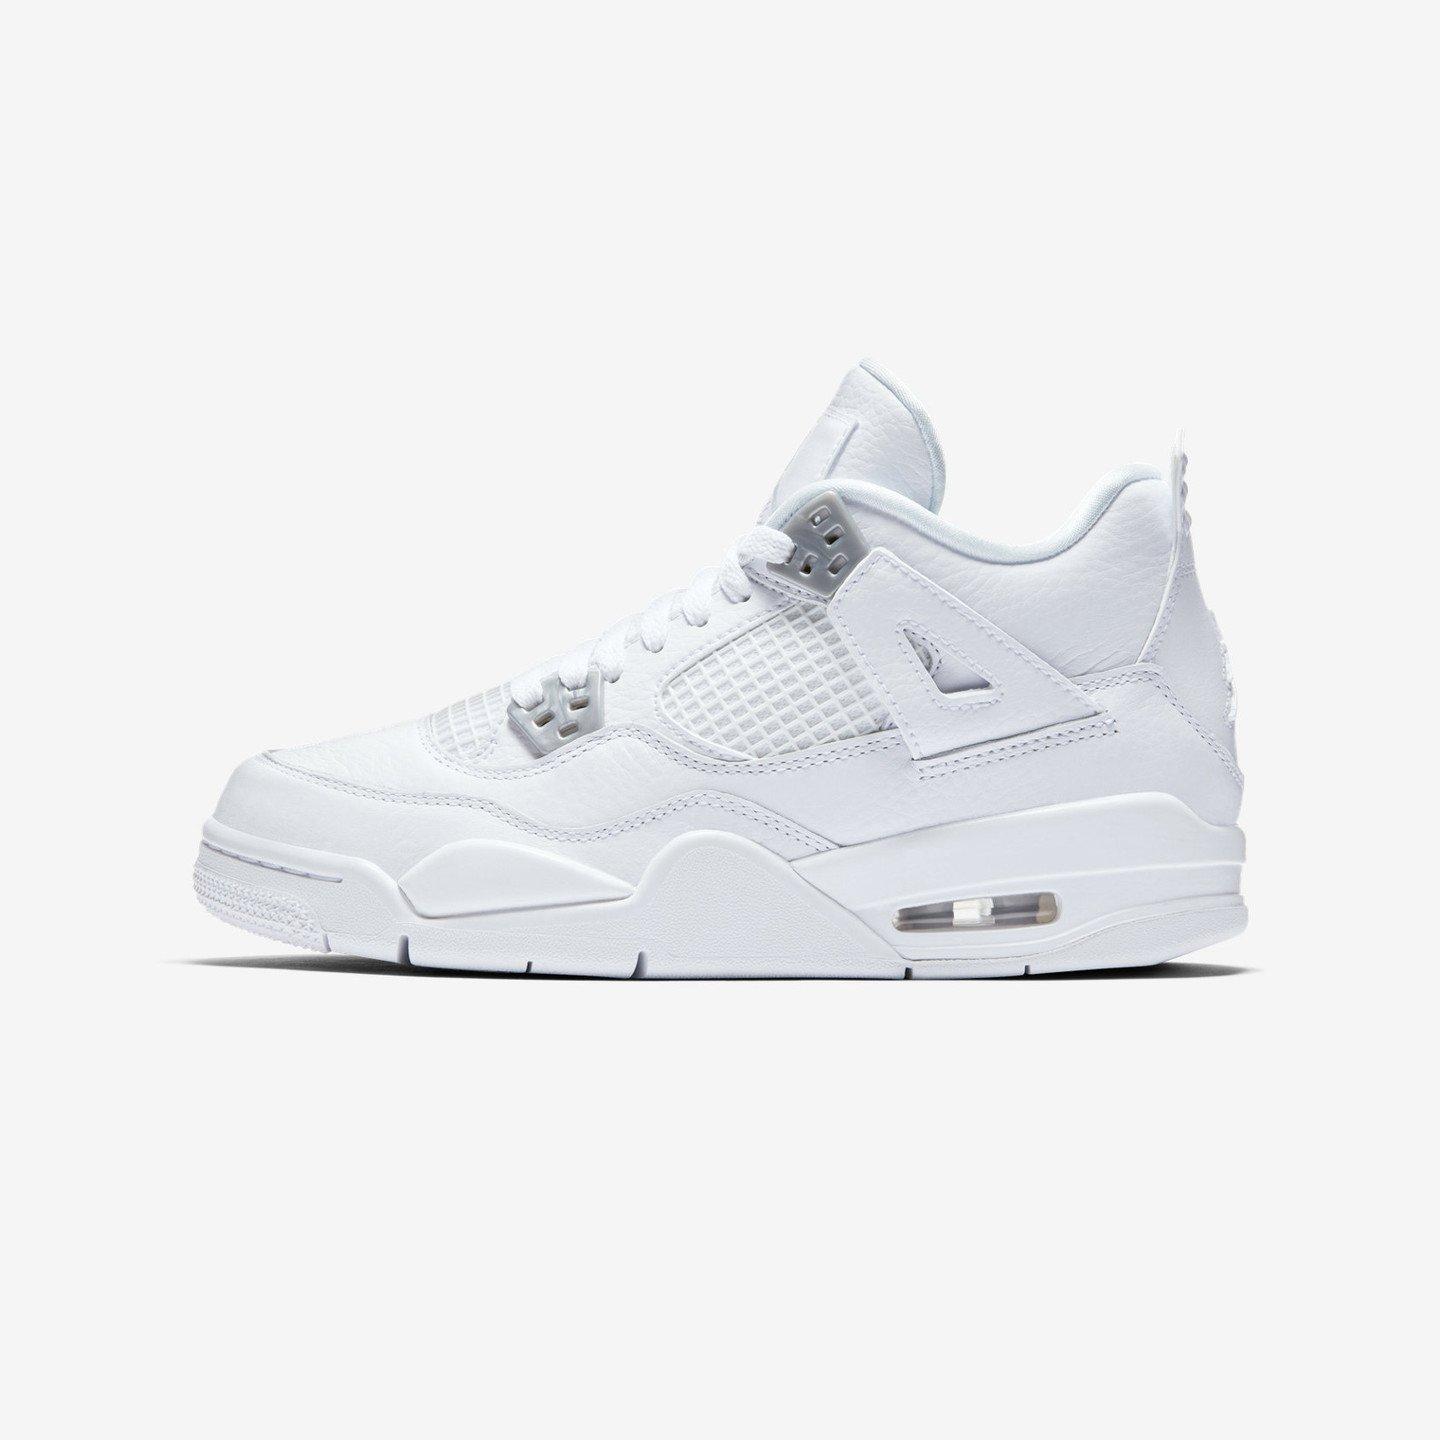 Jordan Air Jordan 4 Retro GS 'Pure Money' White / Silver / Pure Platinum 408452-100-38.5